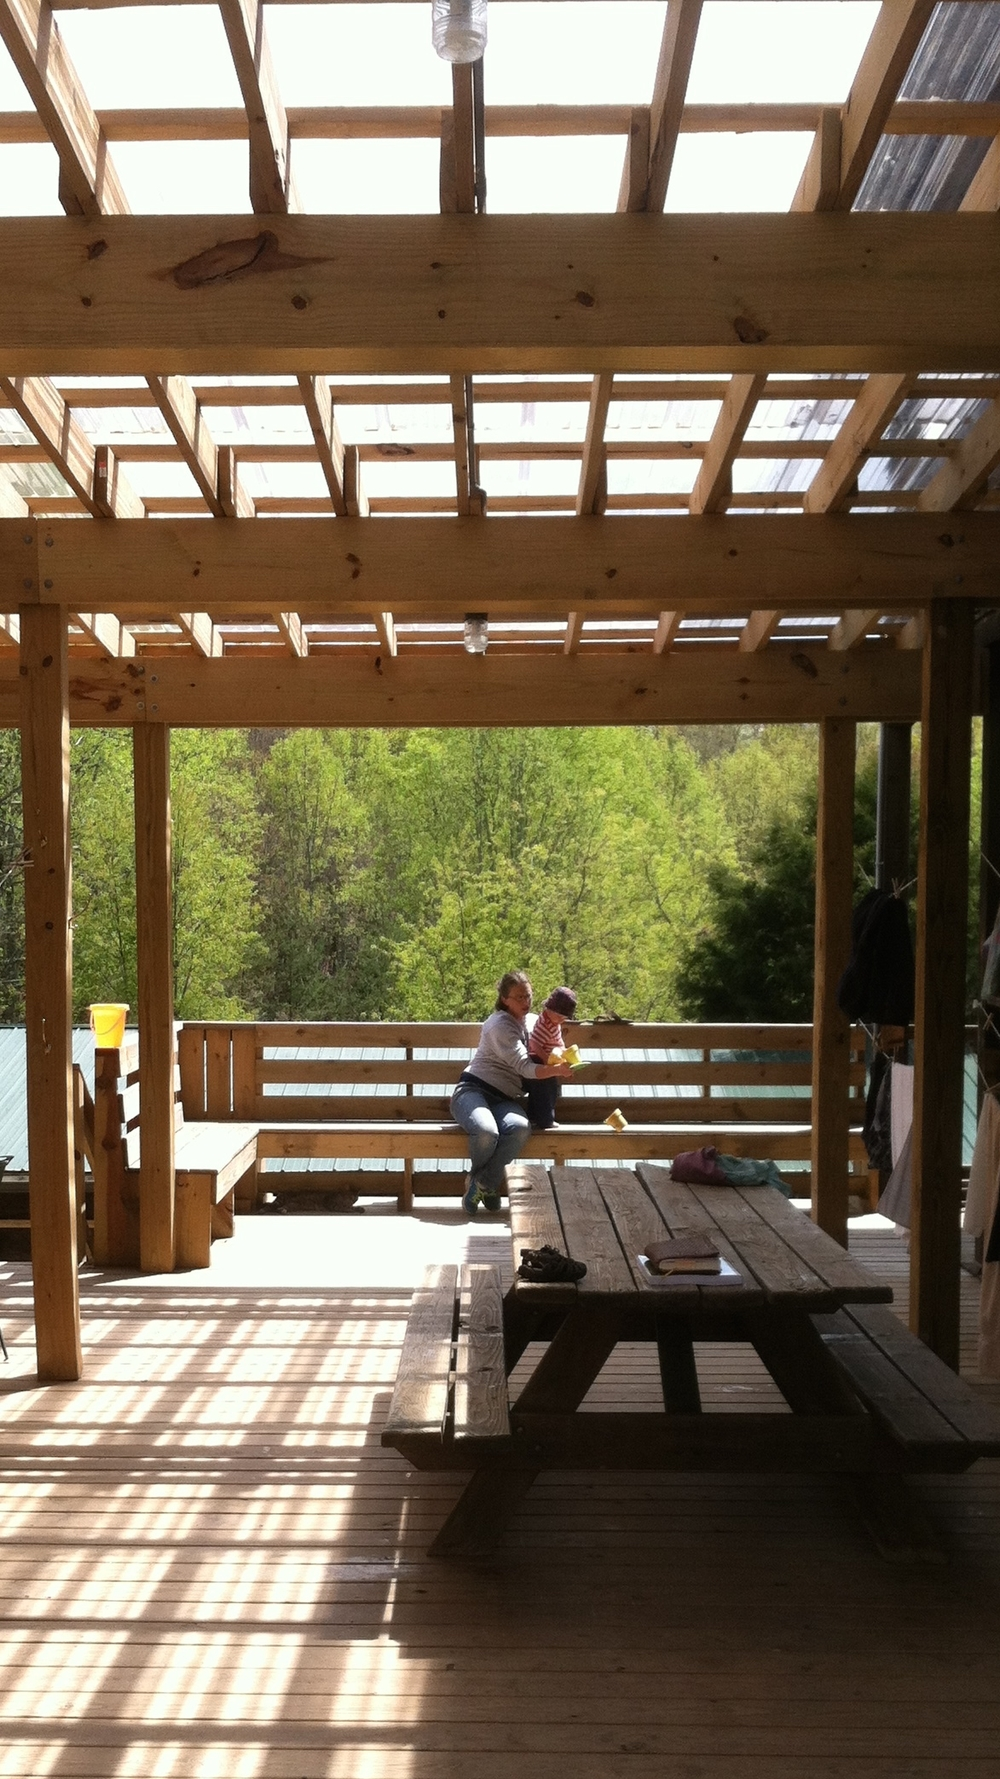 Outdoor covered deck for family and fun